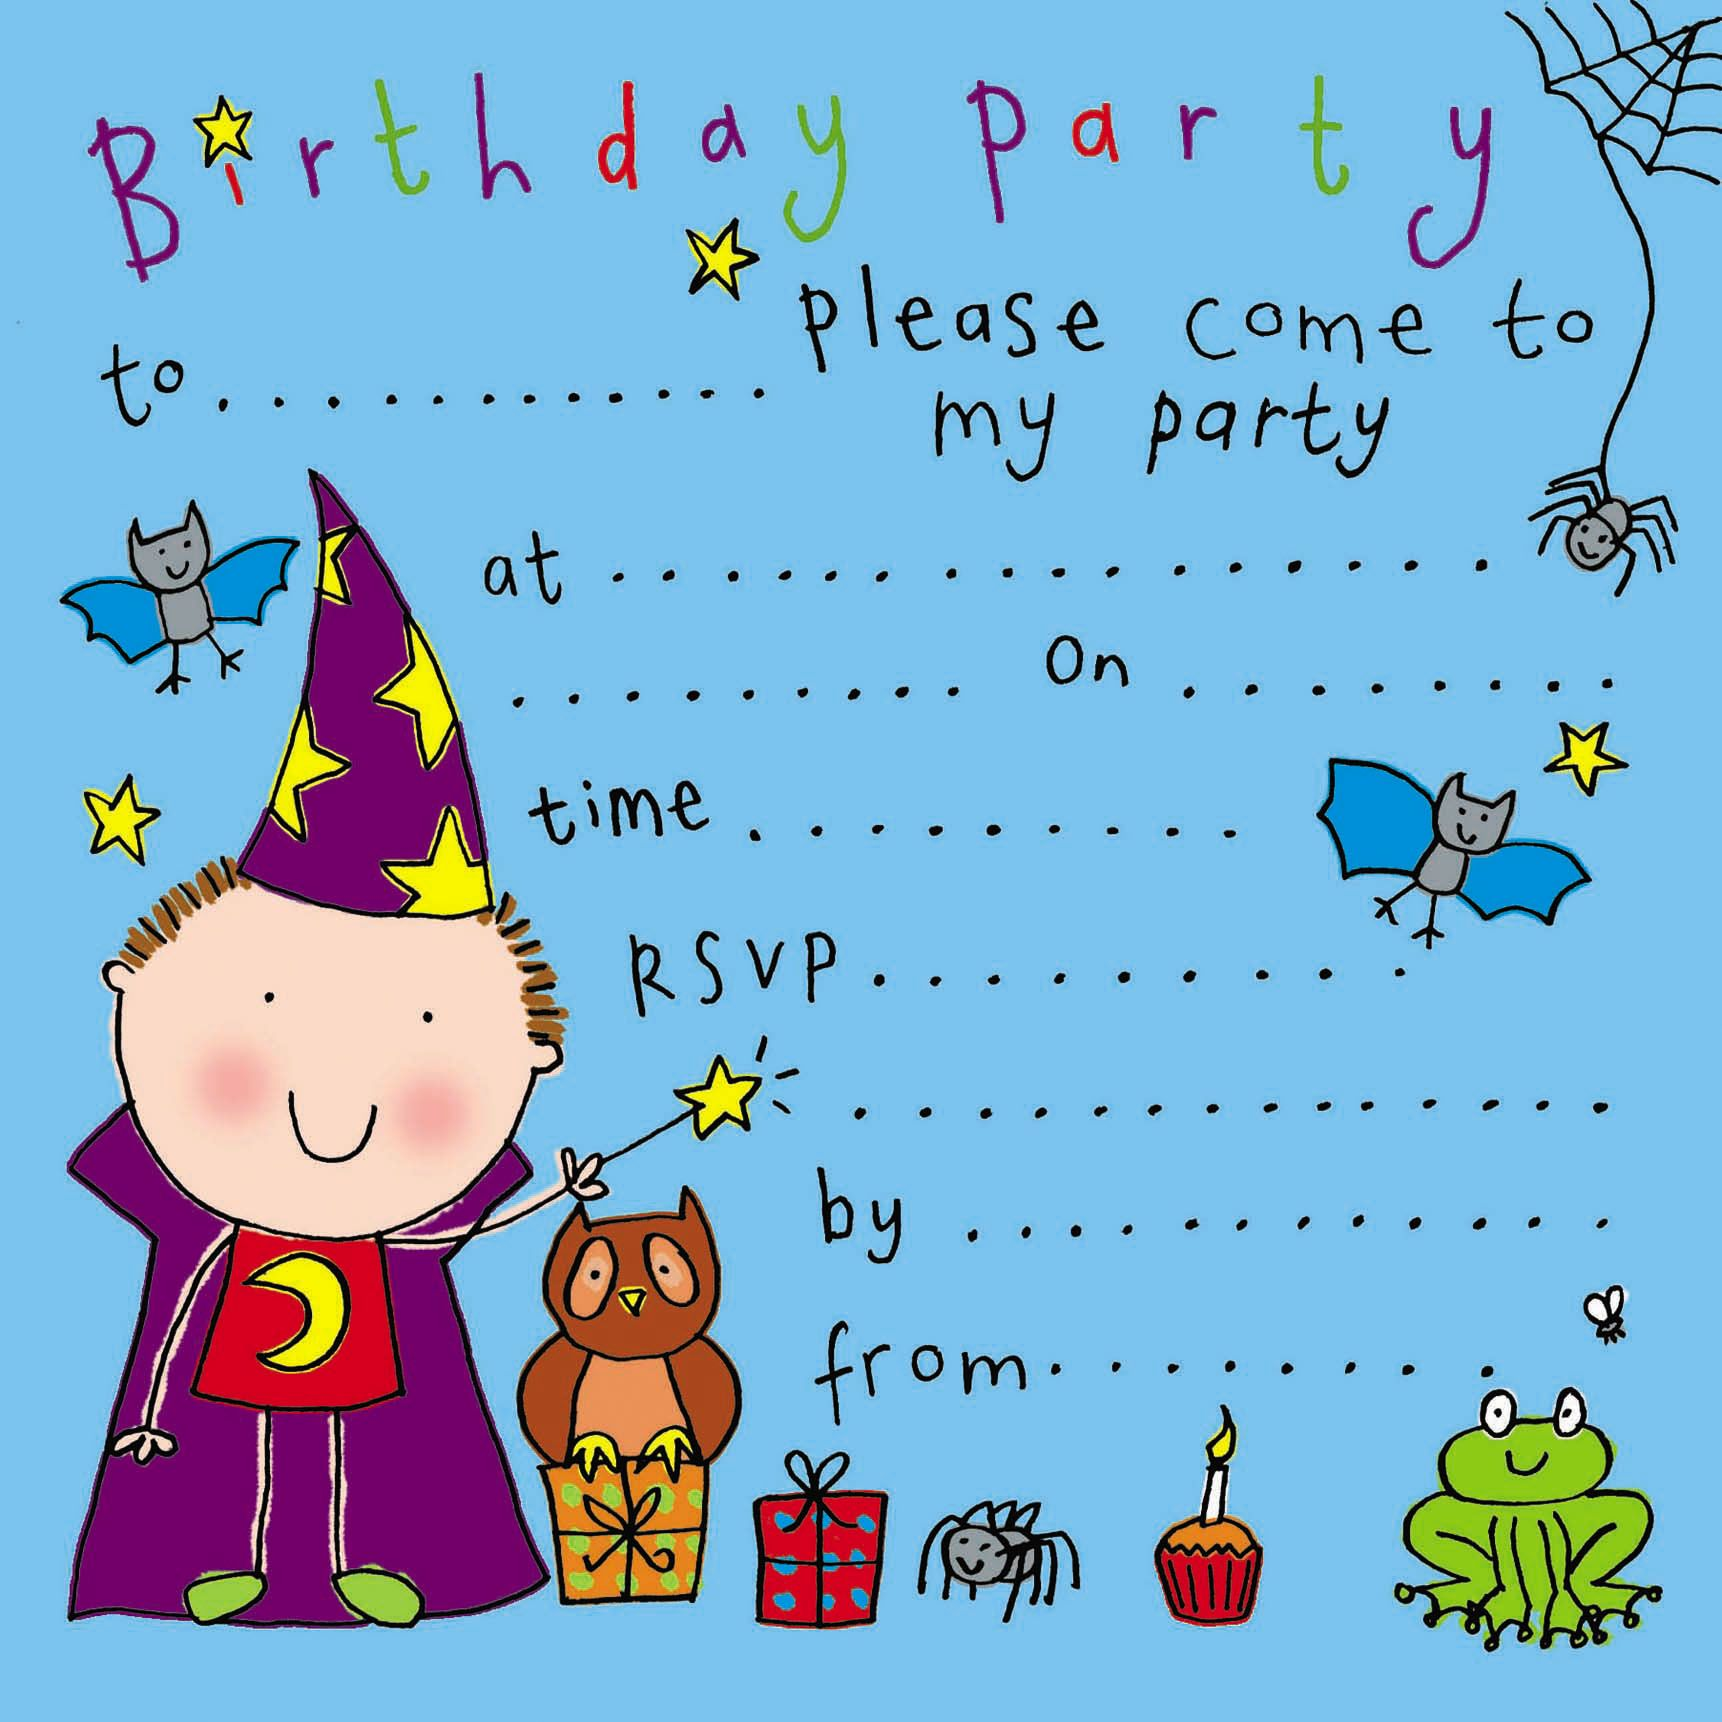 party invitations birthday party invitations kids party invitations childrens party invites